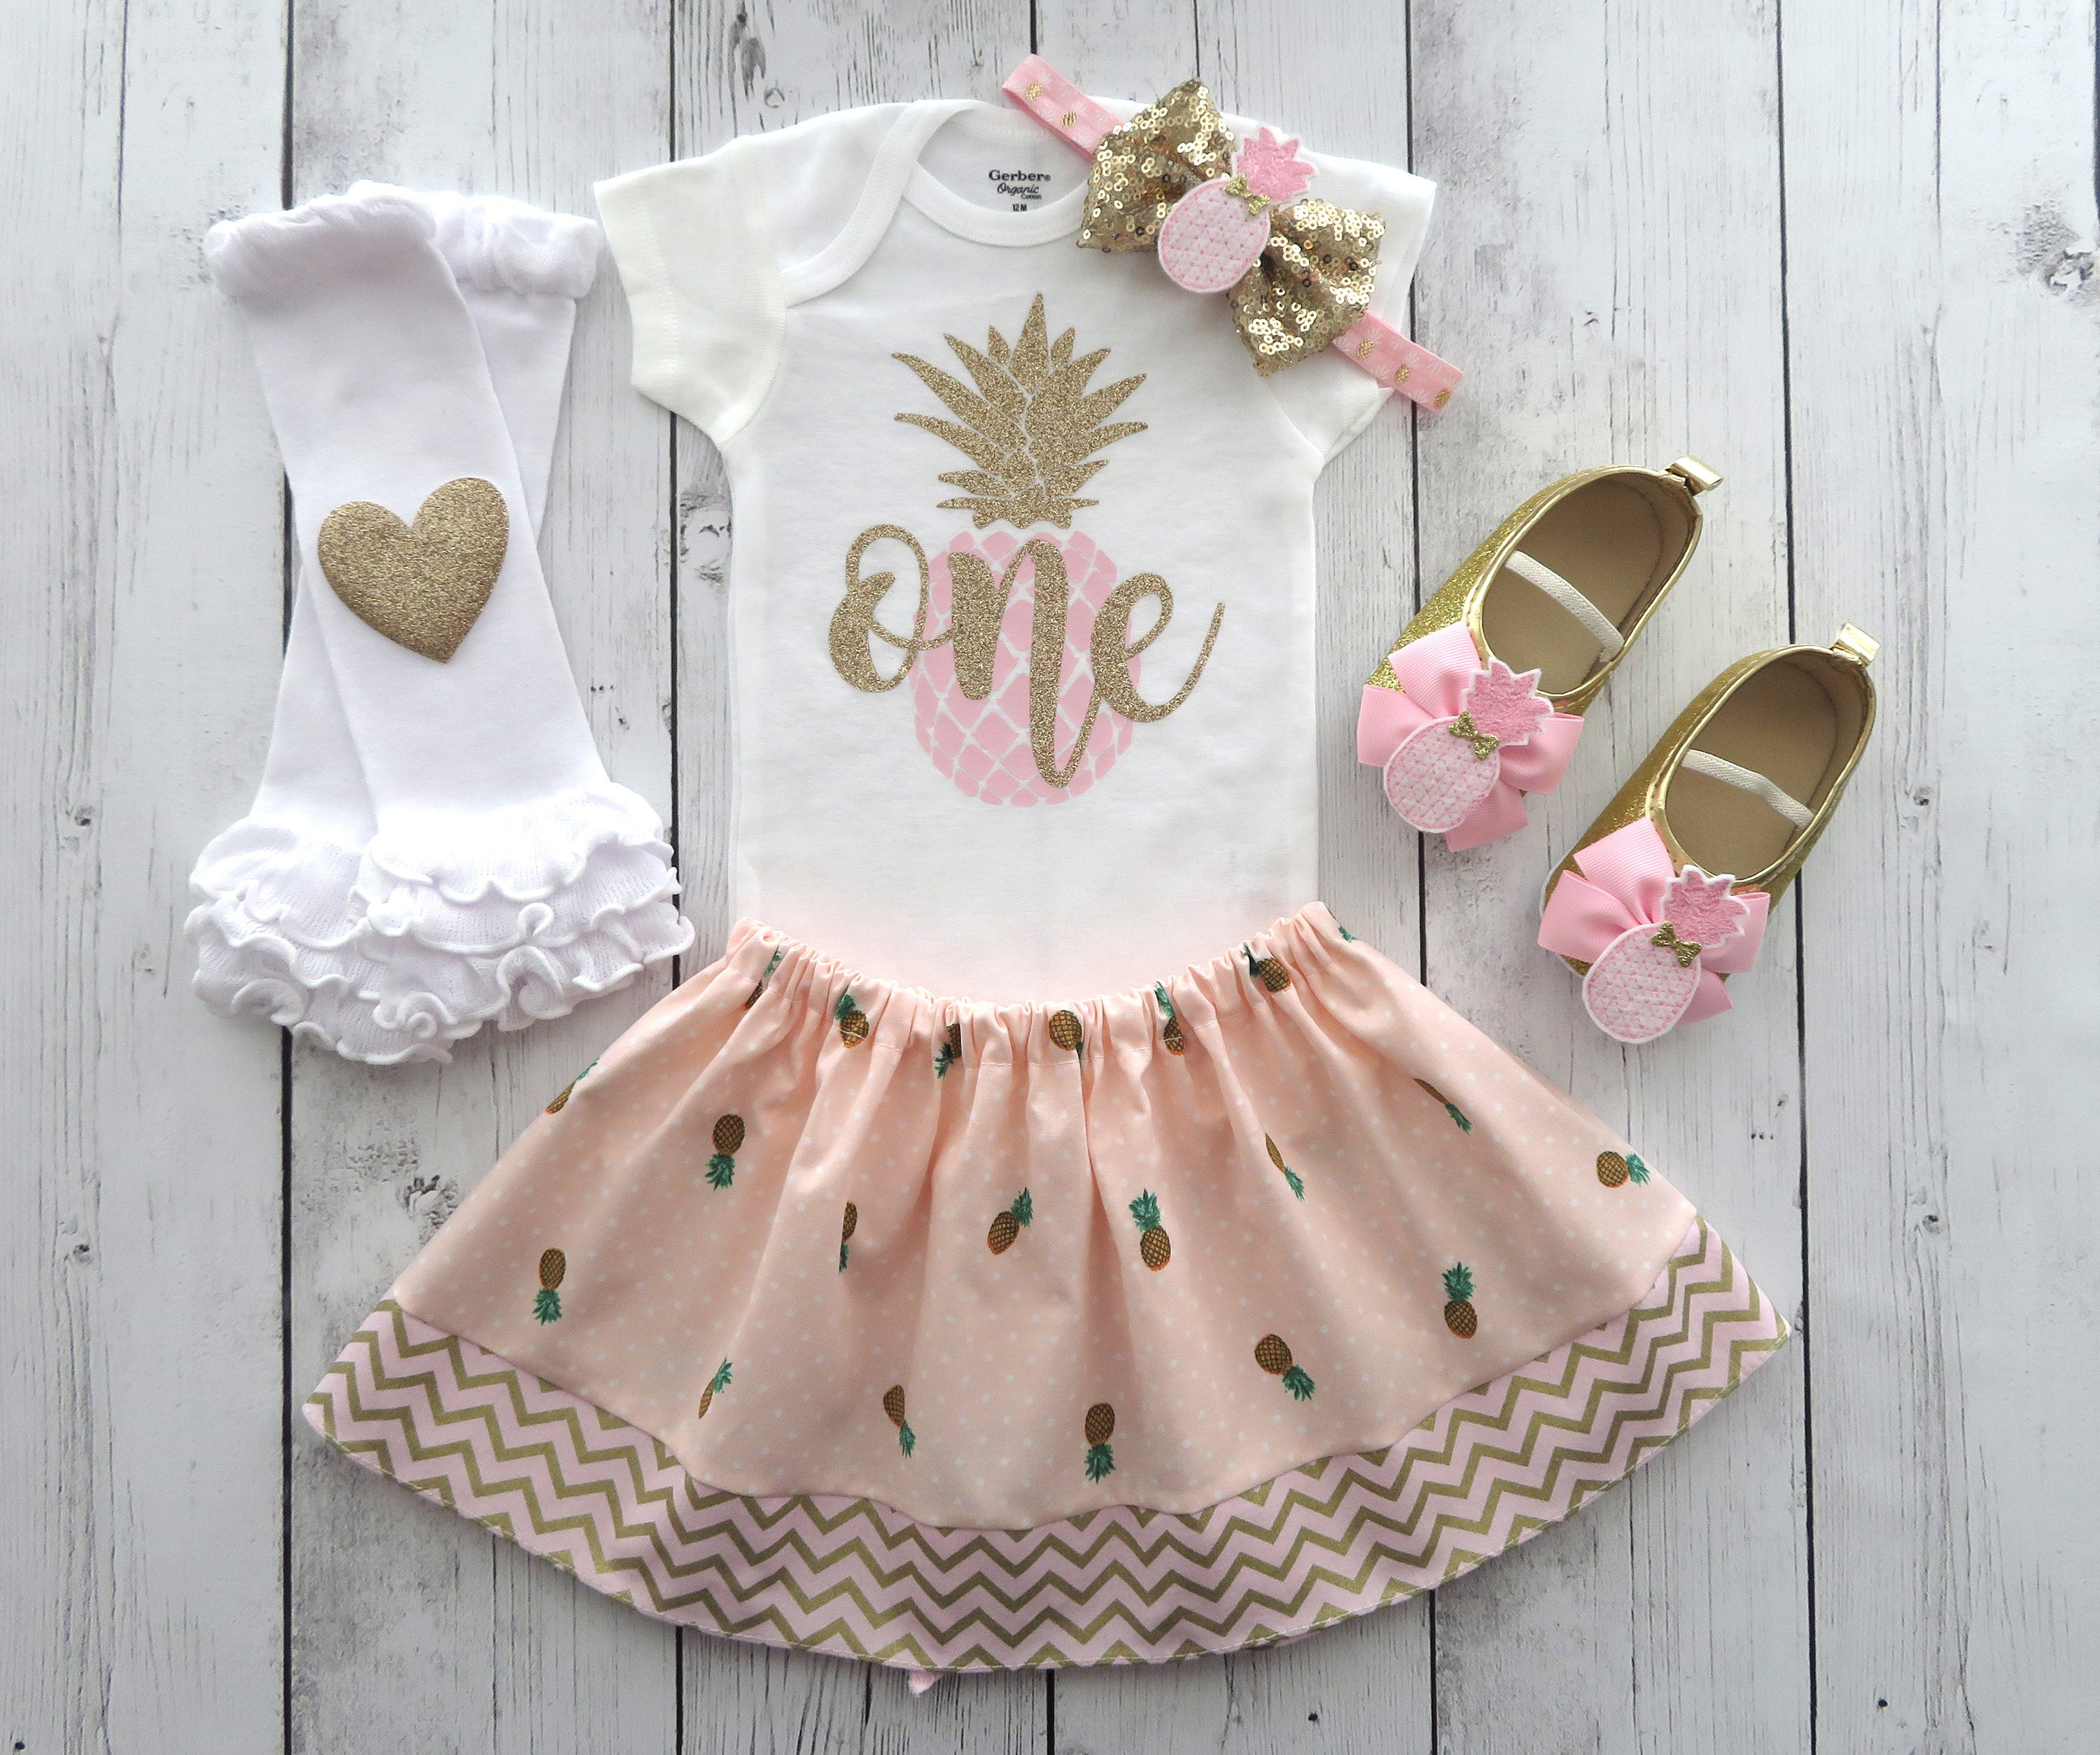 Pineapple First Birthday Outfit in Pink and Gold - Luau birthday outfit, 1st birthday outfit, summer birthday outfi girl, aloha birthday